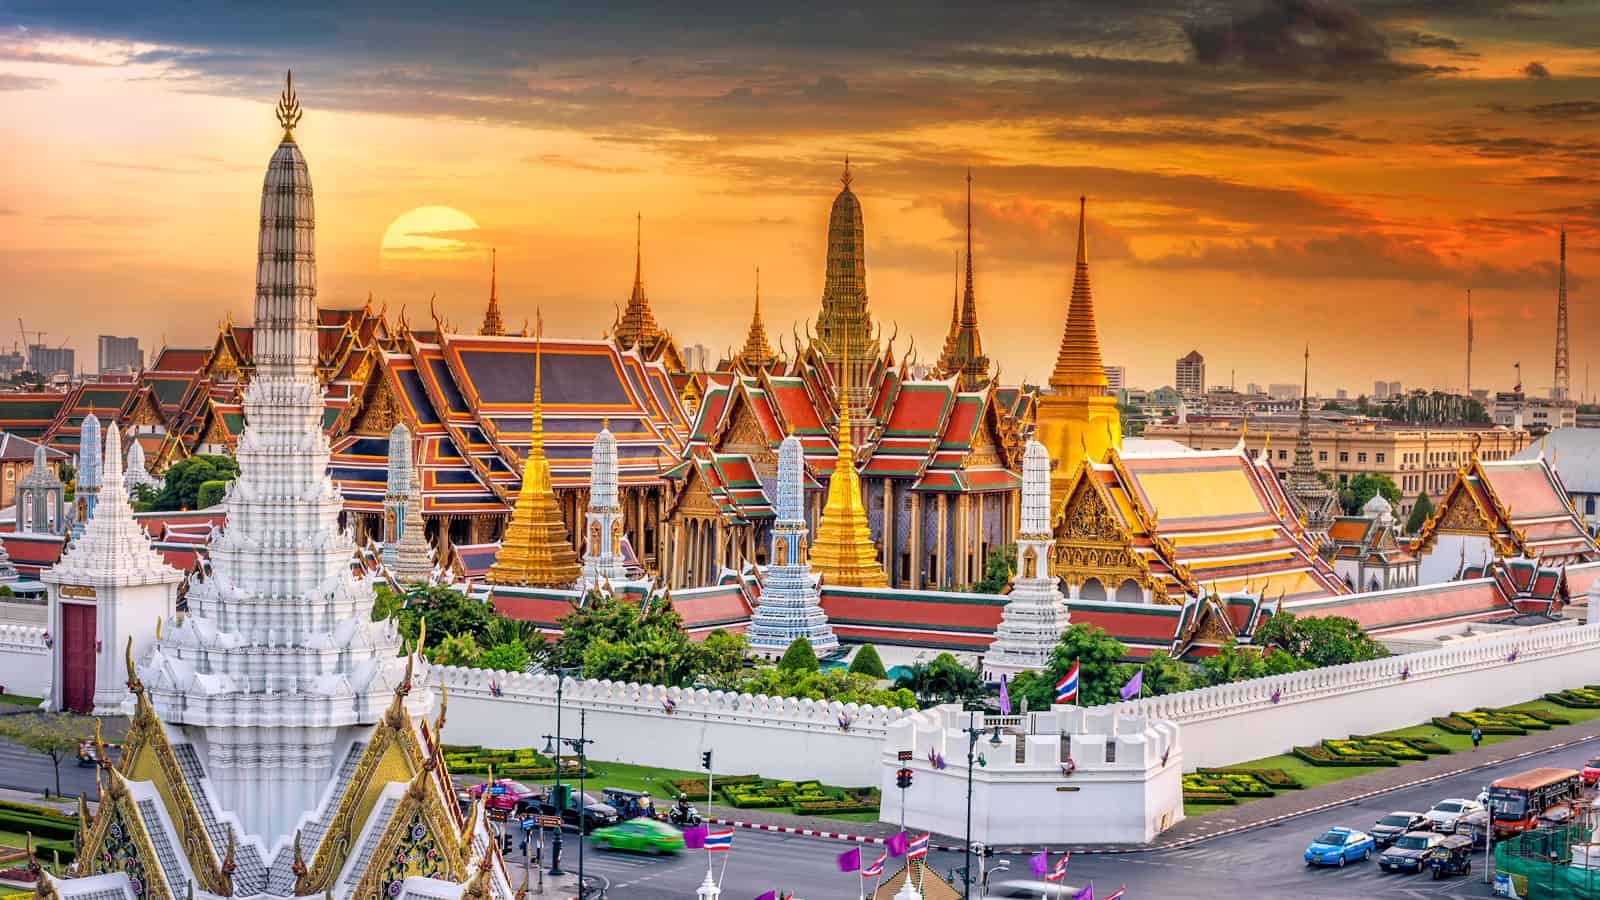 The Grand Palace in Bangkok.